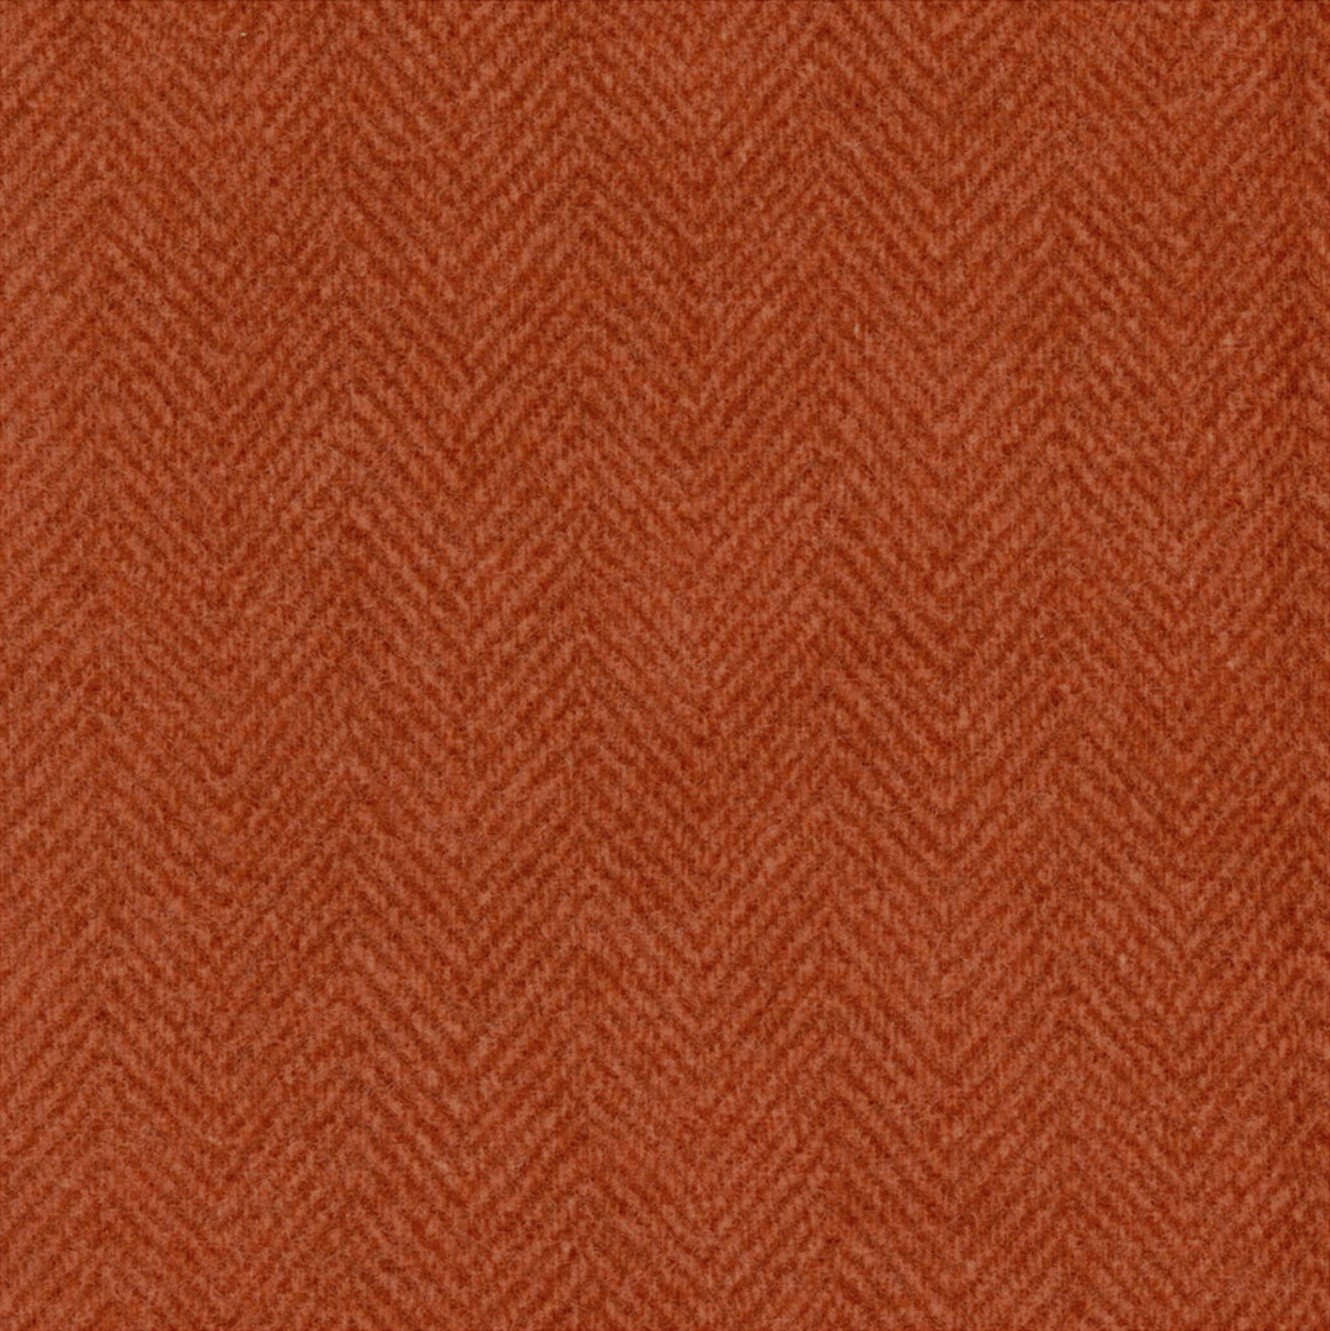 Woolies Flannel Herringbone Spice Orange (MASF1841-M)